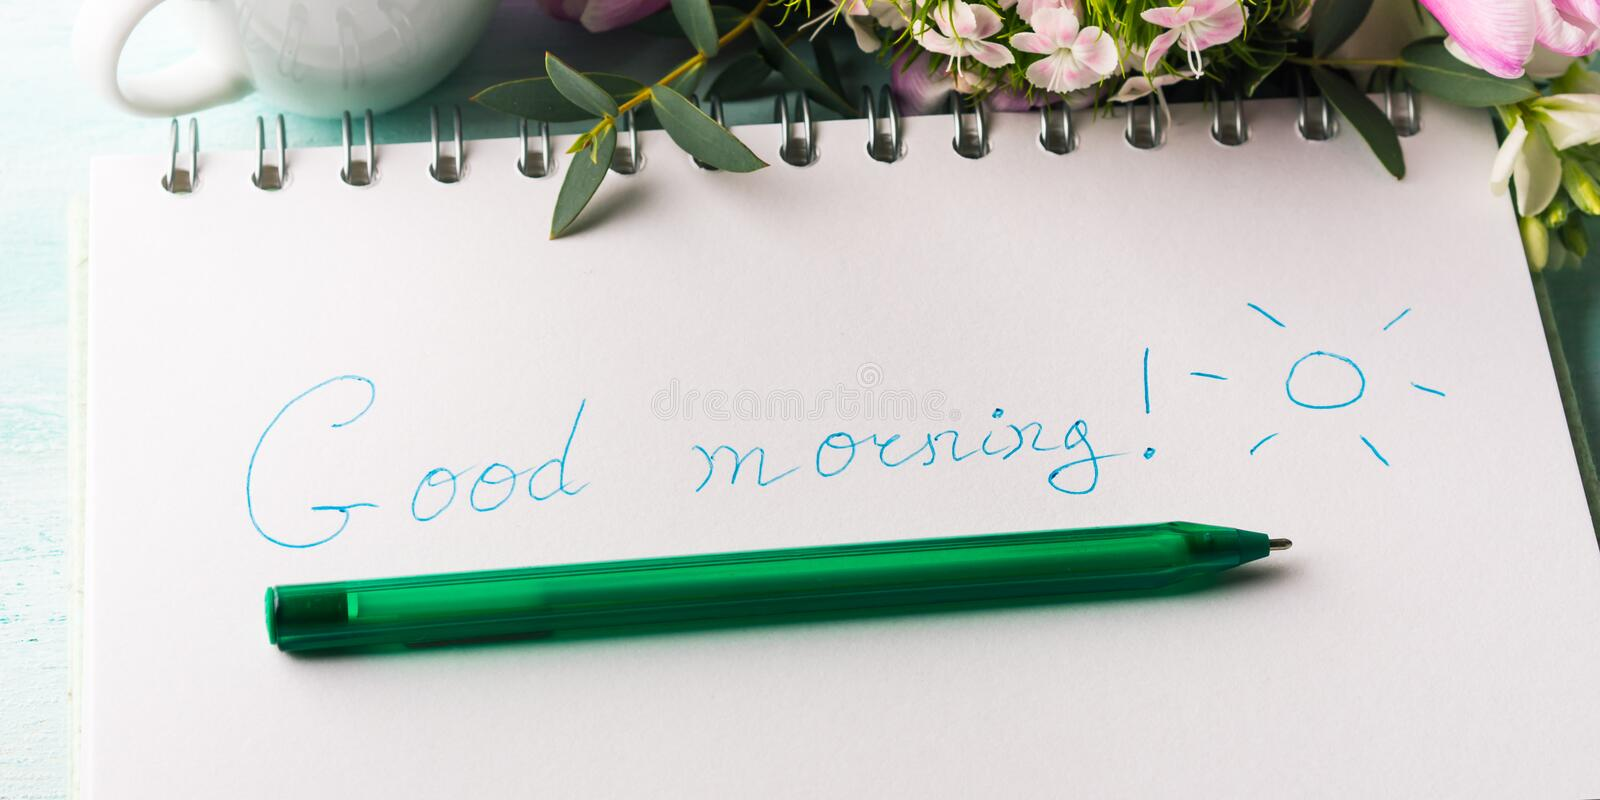 Wish good morning on notebook page and coffee. Wishing good morning hand written on notebook page and cup of coffee flowers. Spring summer breakfast still life stock photos